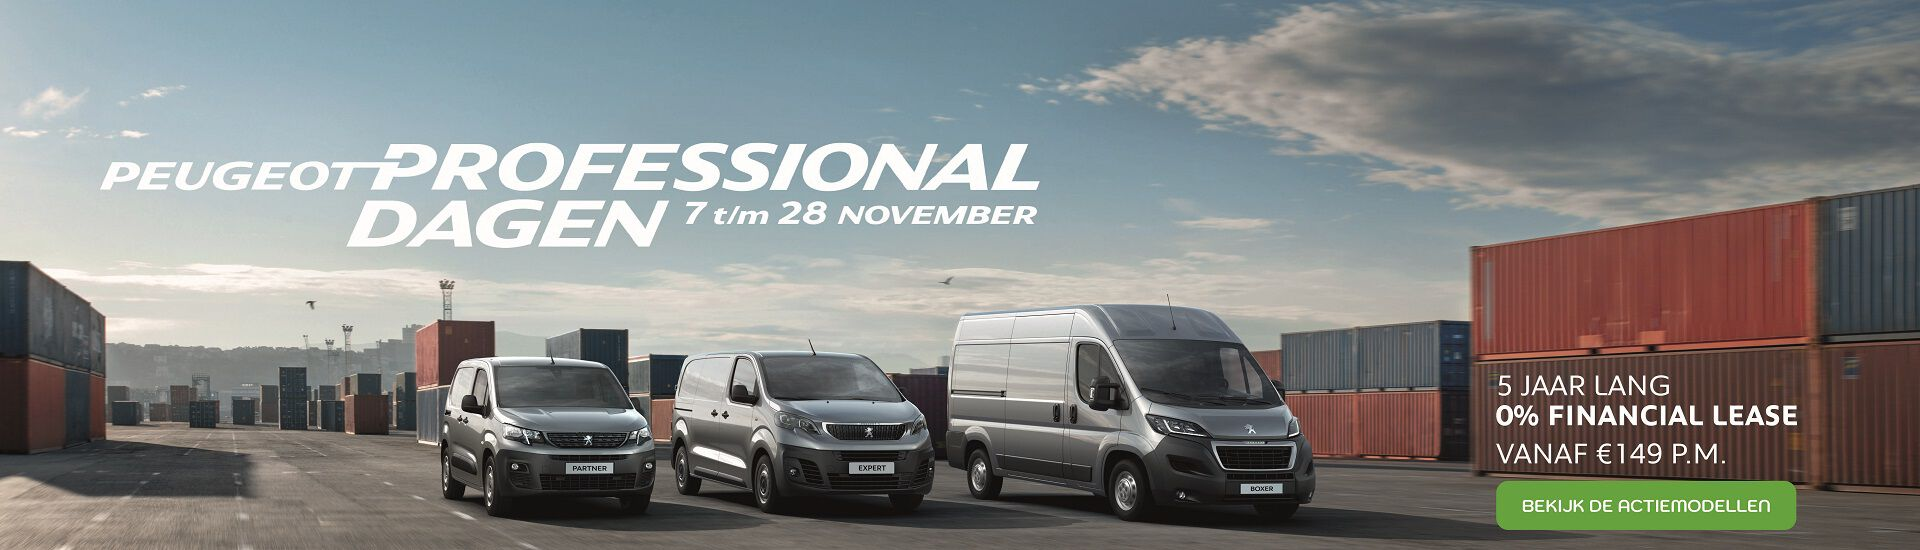 Header home Peugeot Professional Dagen tm 28-11-2020